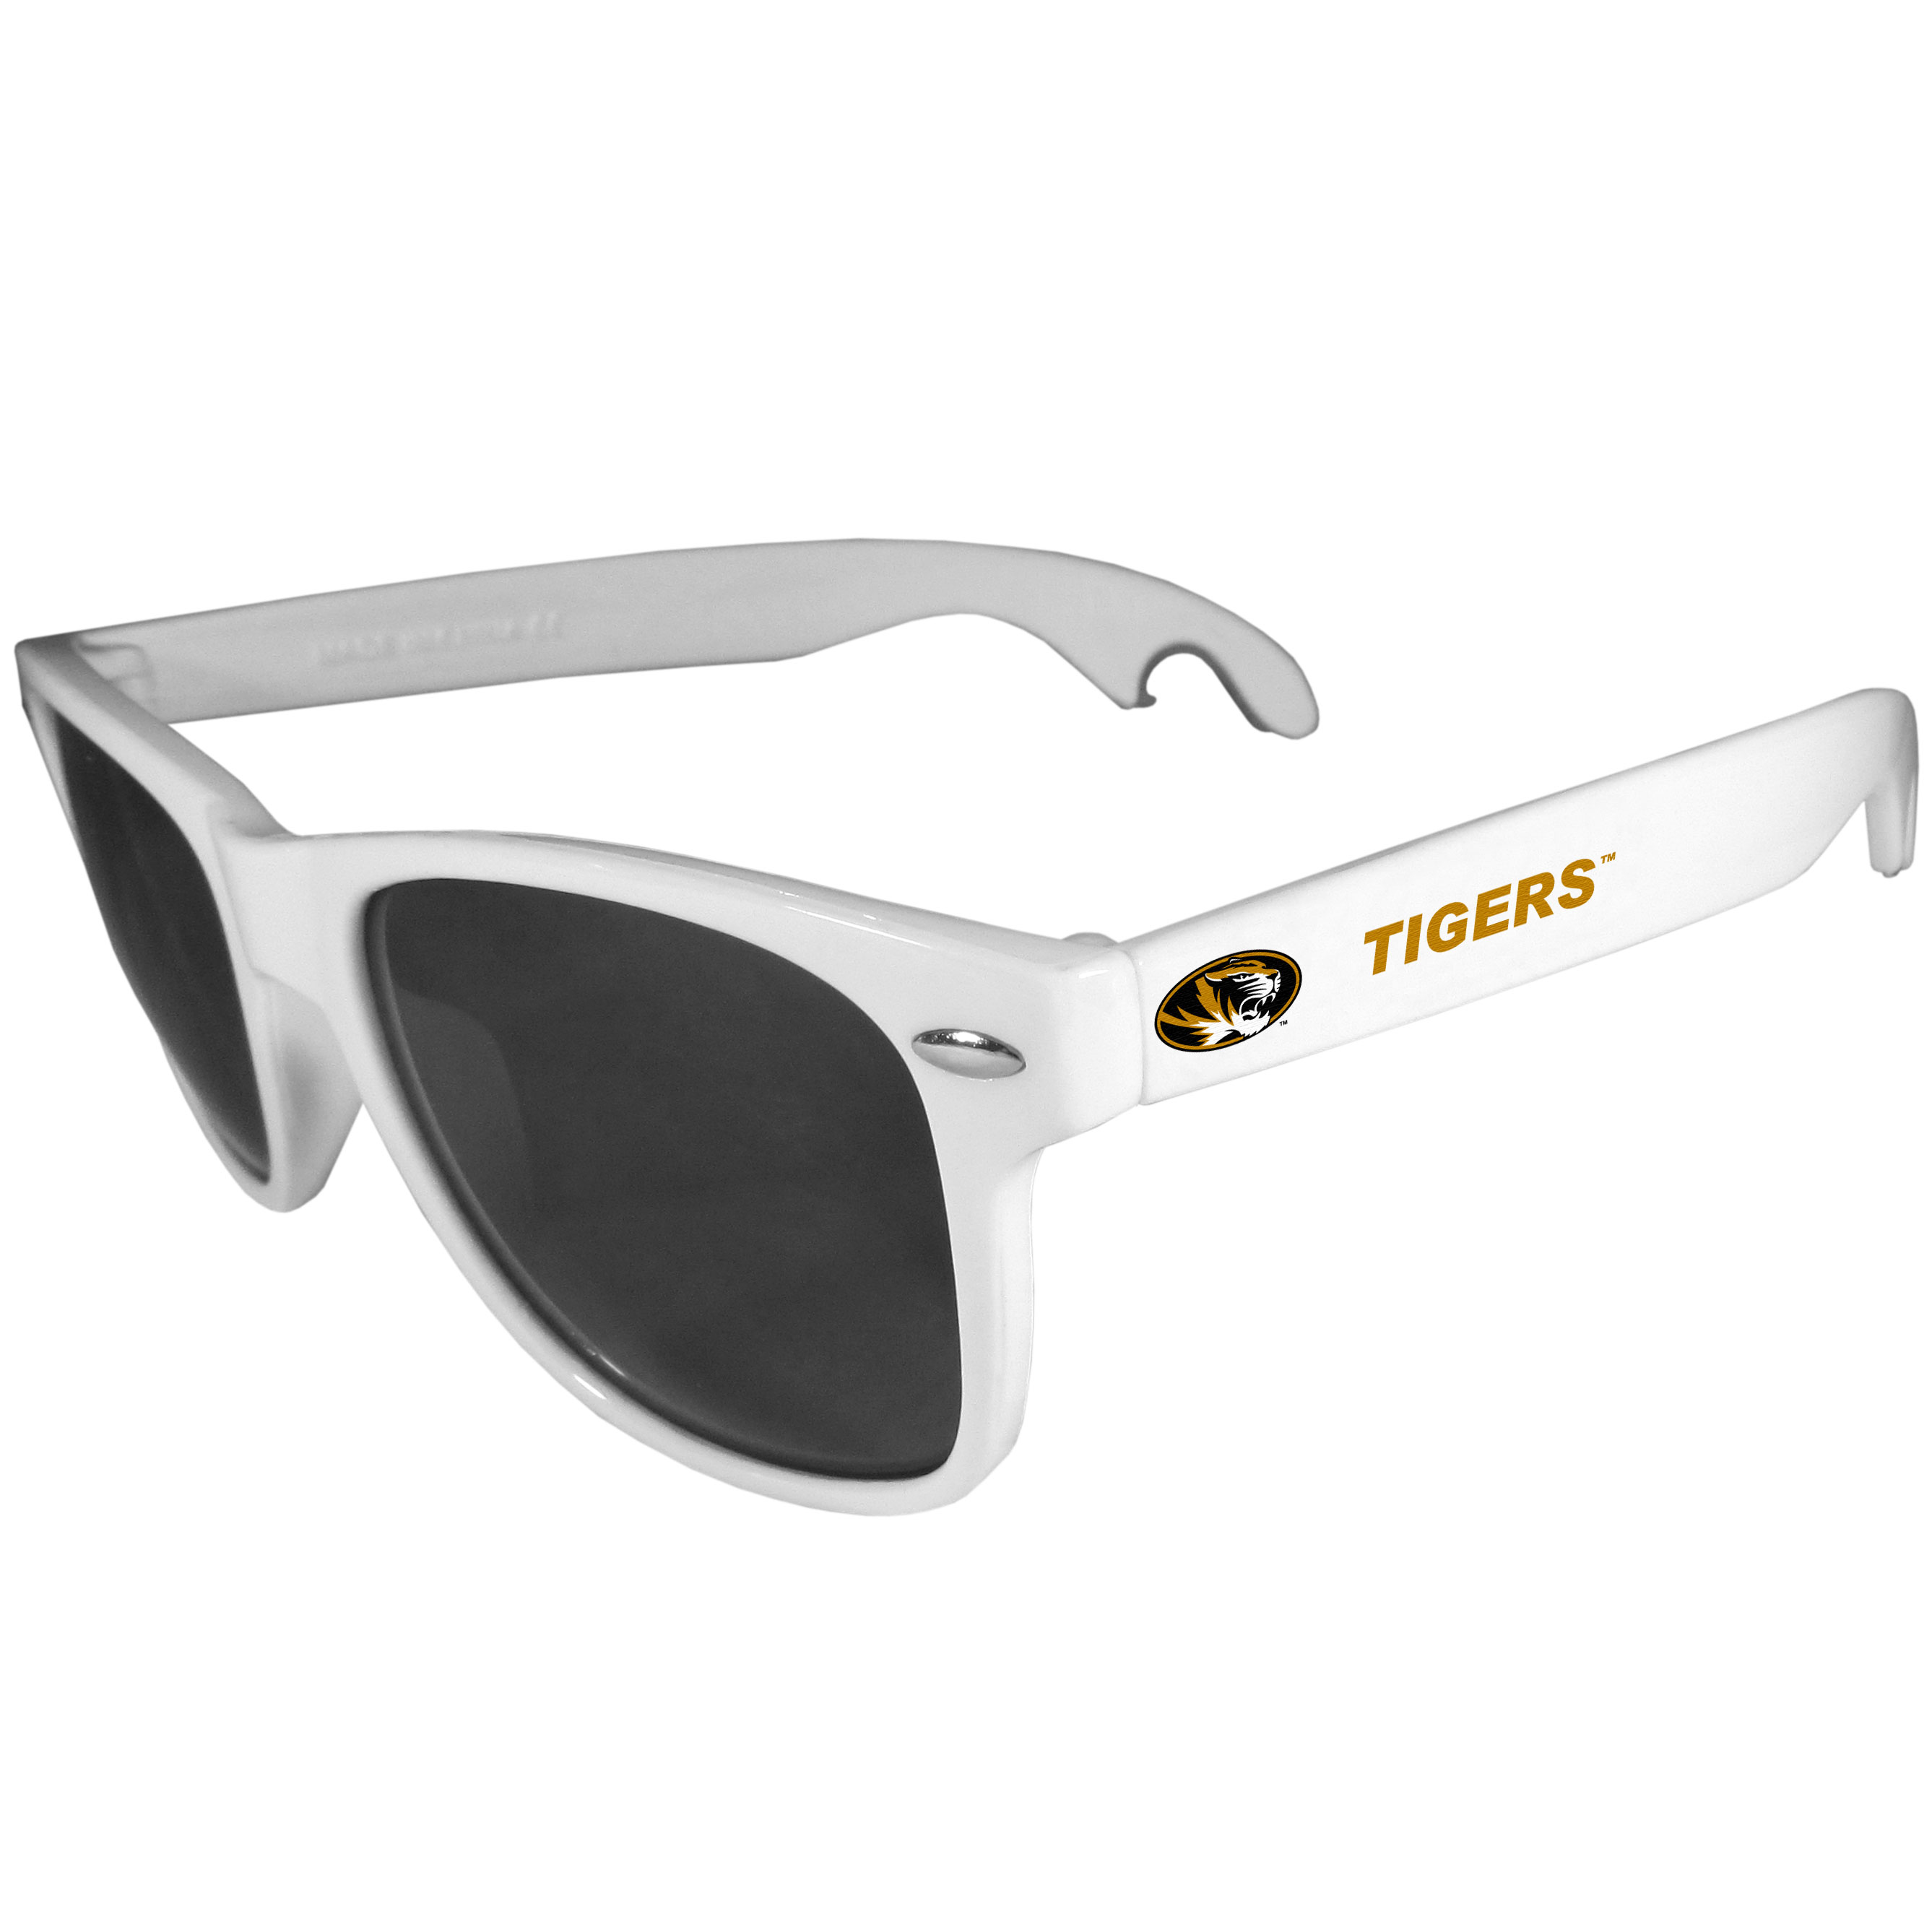 Missouri Tigers Beachfarer Bottle Opener Sunglasses, White - Seriously, these sunglasses open bottles! Keep the party going with these amazing Missouri Tigers bottle opener sunglasses. The stylish retro frames feature team designs on the arms and functional bottle openers on the end of the arms. Whether you are at the beach or having a backyard BBQ on game day, these shades will keep your eyes protected with 100% UVA/UVB protection and keep you hydrated with the handy bottle opener arms.